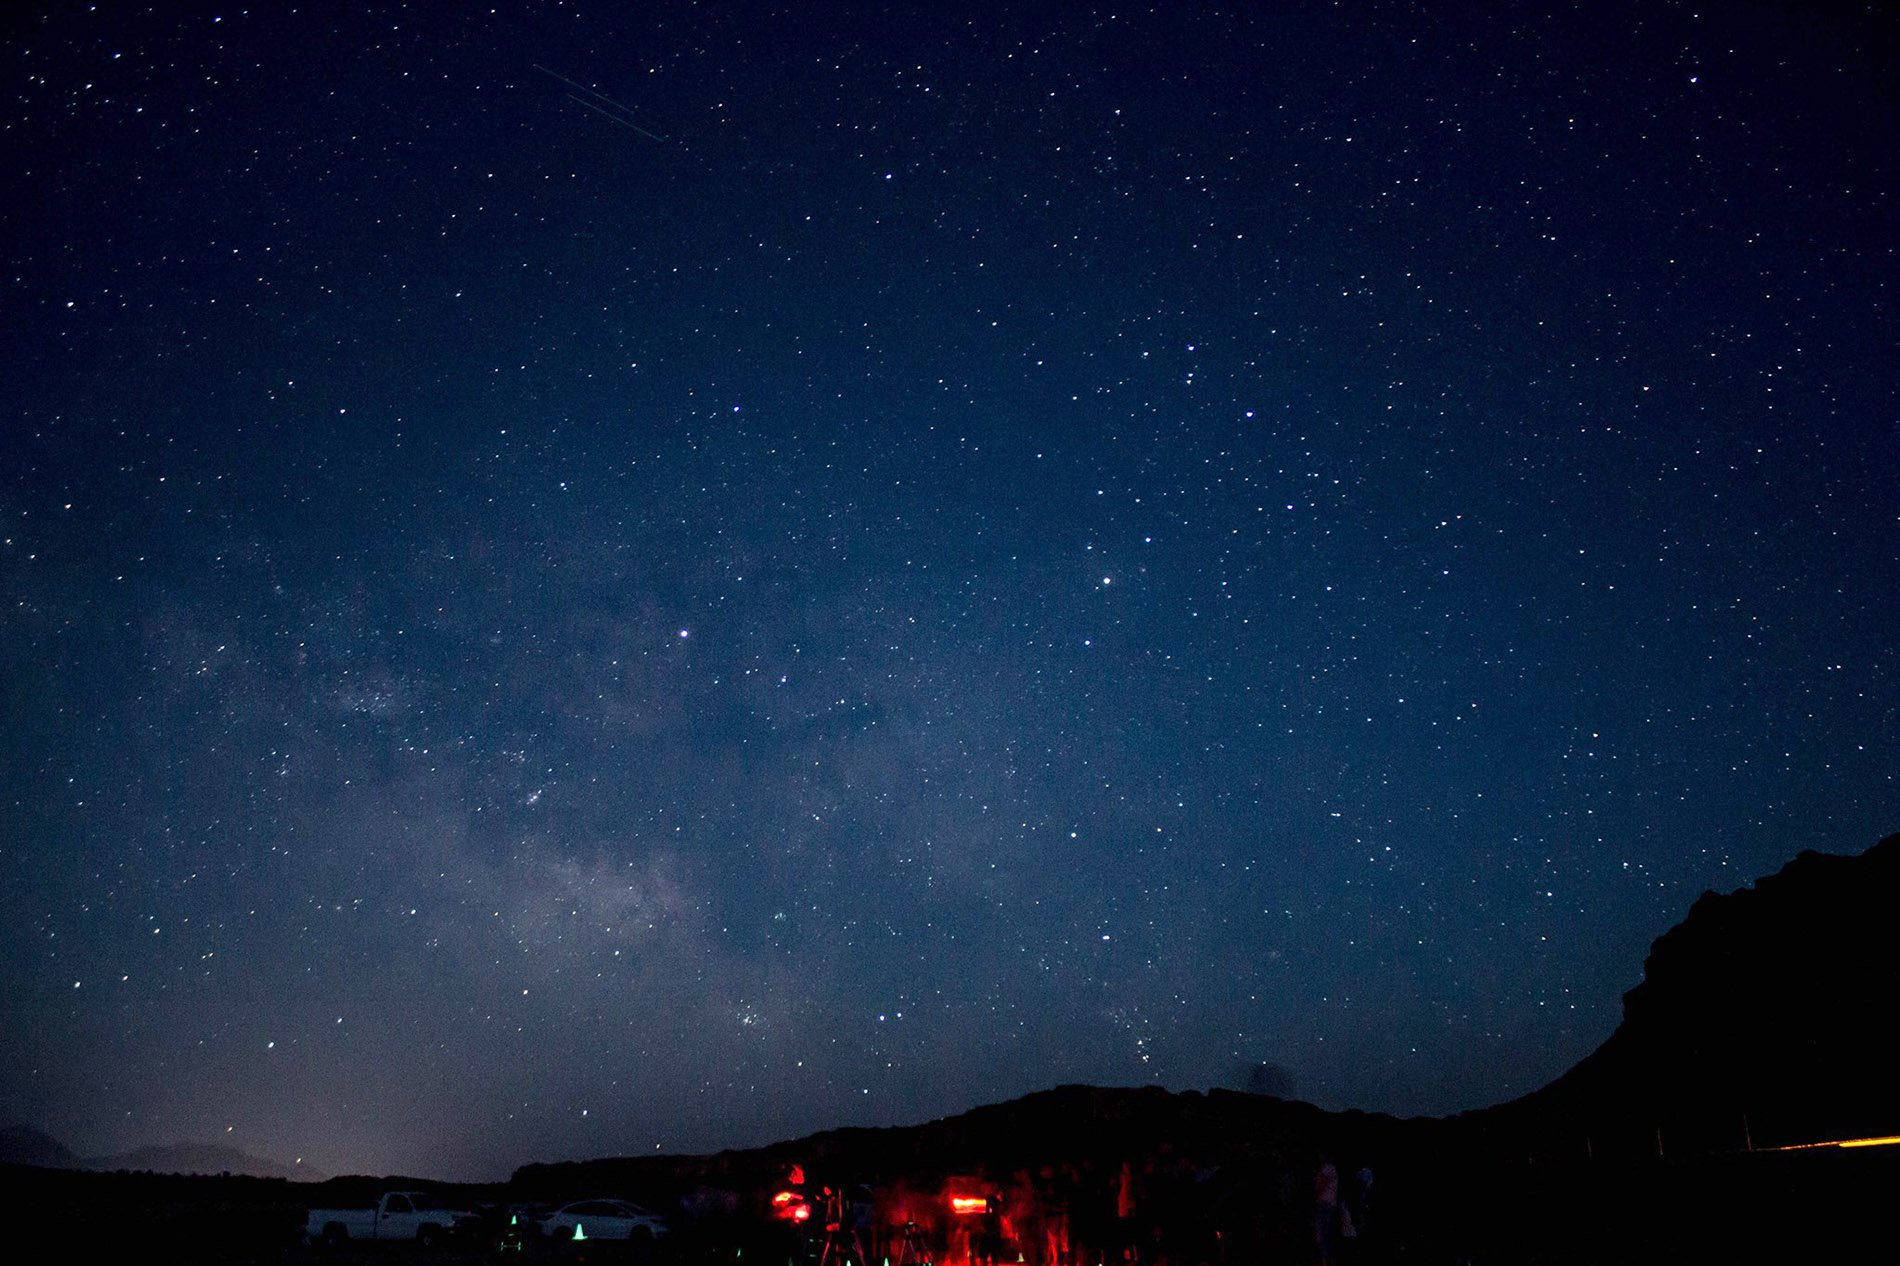 """Dark sky photo taken during a NPS """"star party"""" at Grandview Point, Island in the Sky, Canyonlands National Park."""